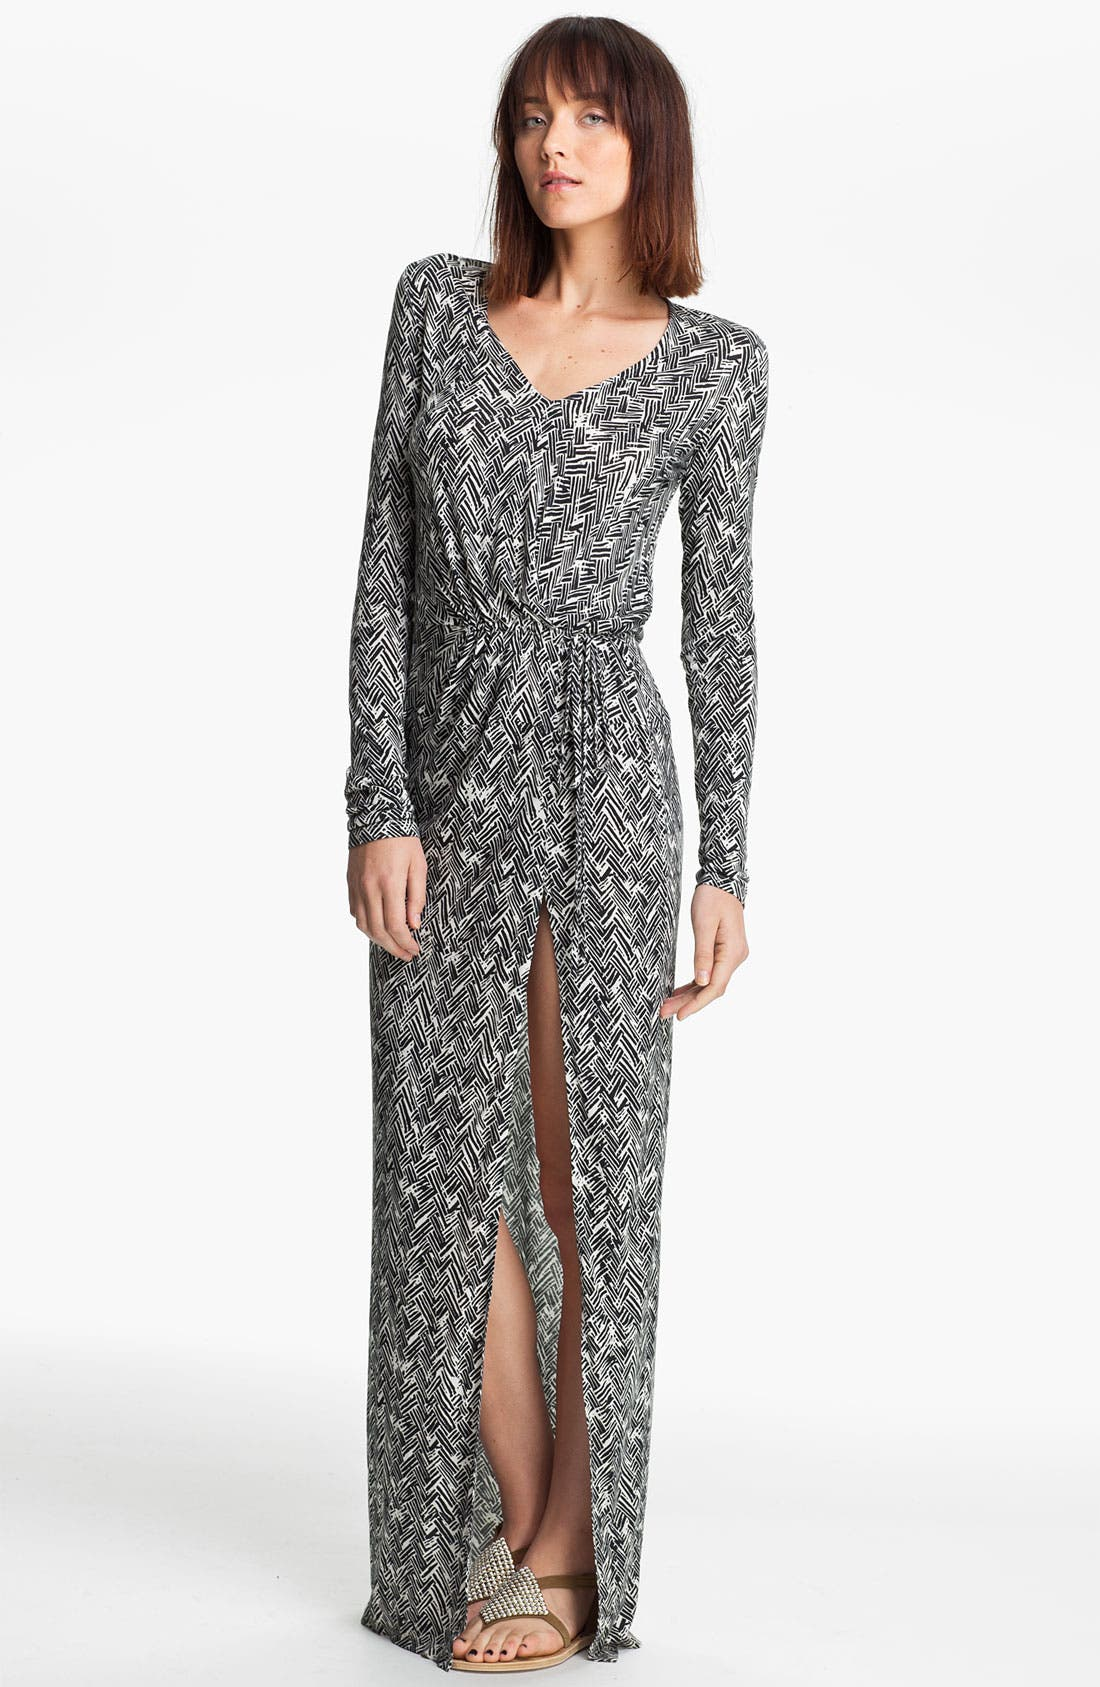 Alternate Image 1 Selected - Thakoon Carbon Copy Basket Weave Print Maxi Dress